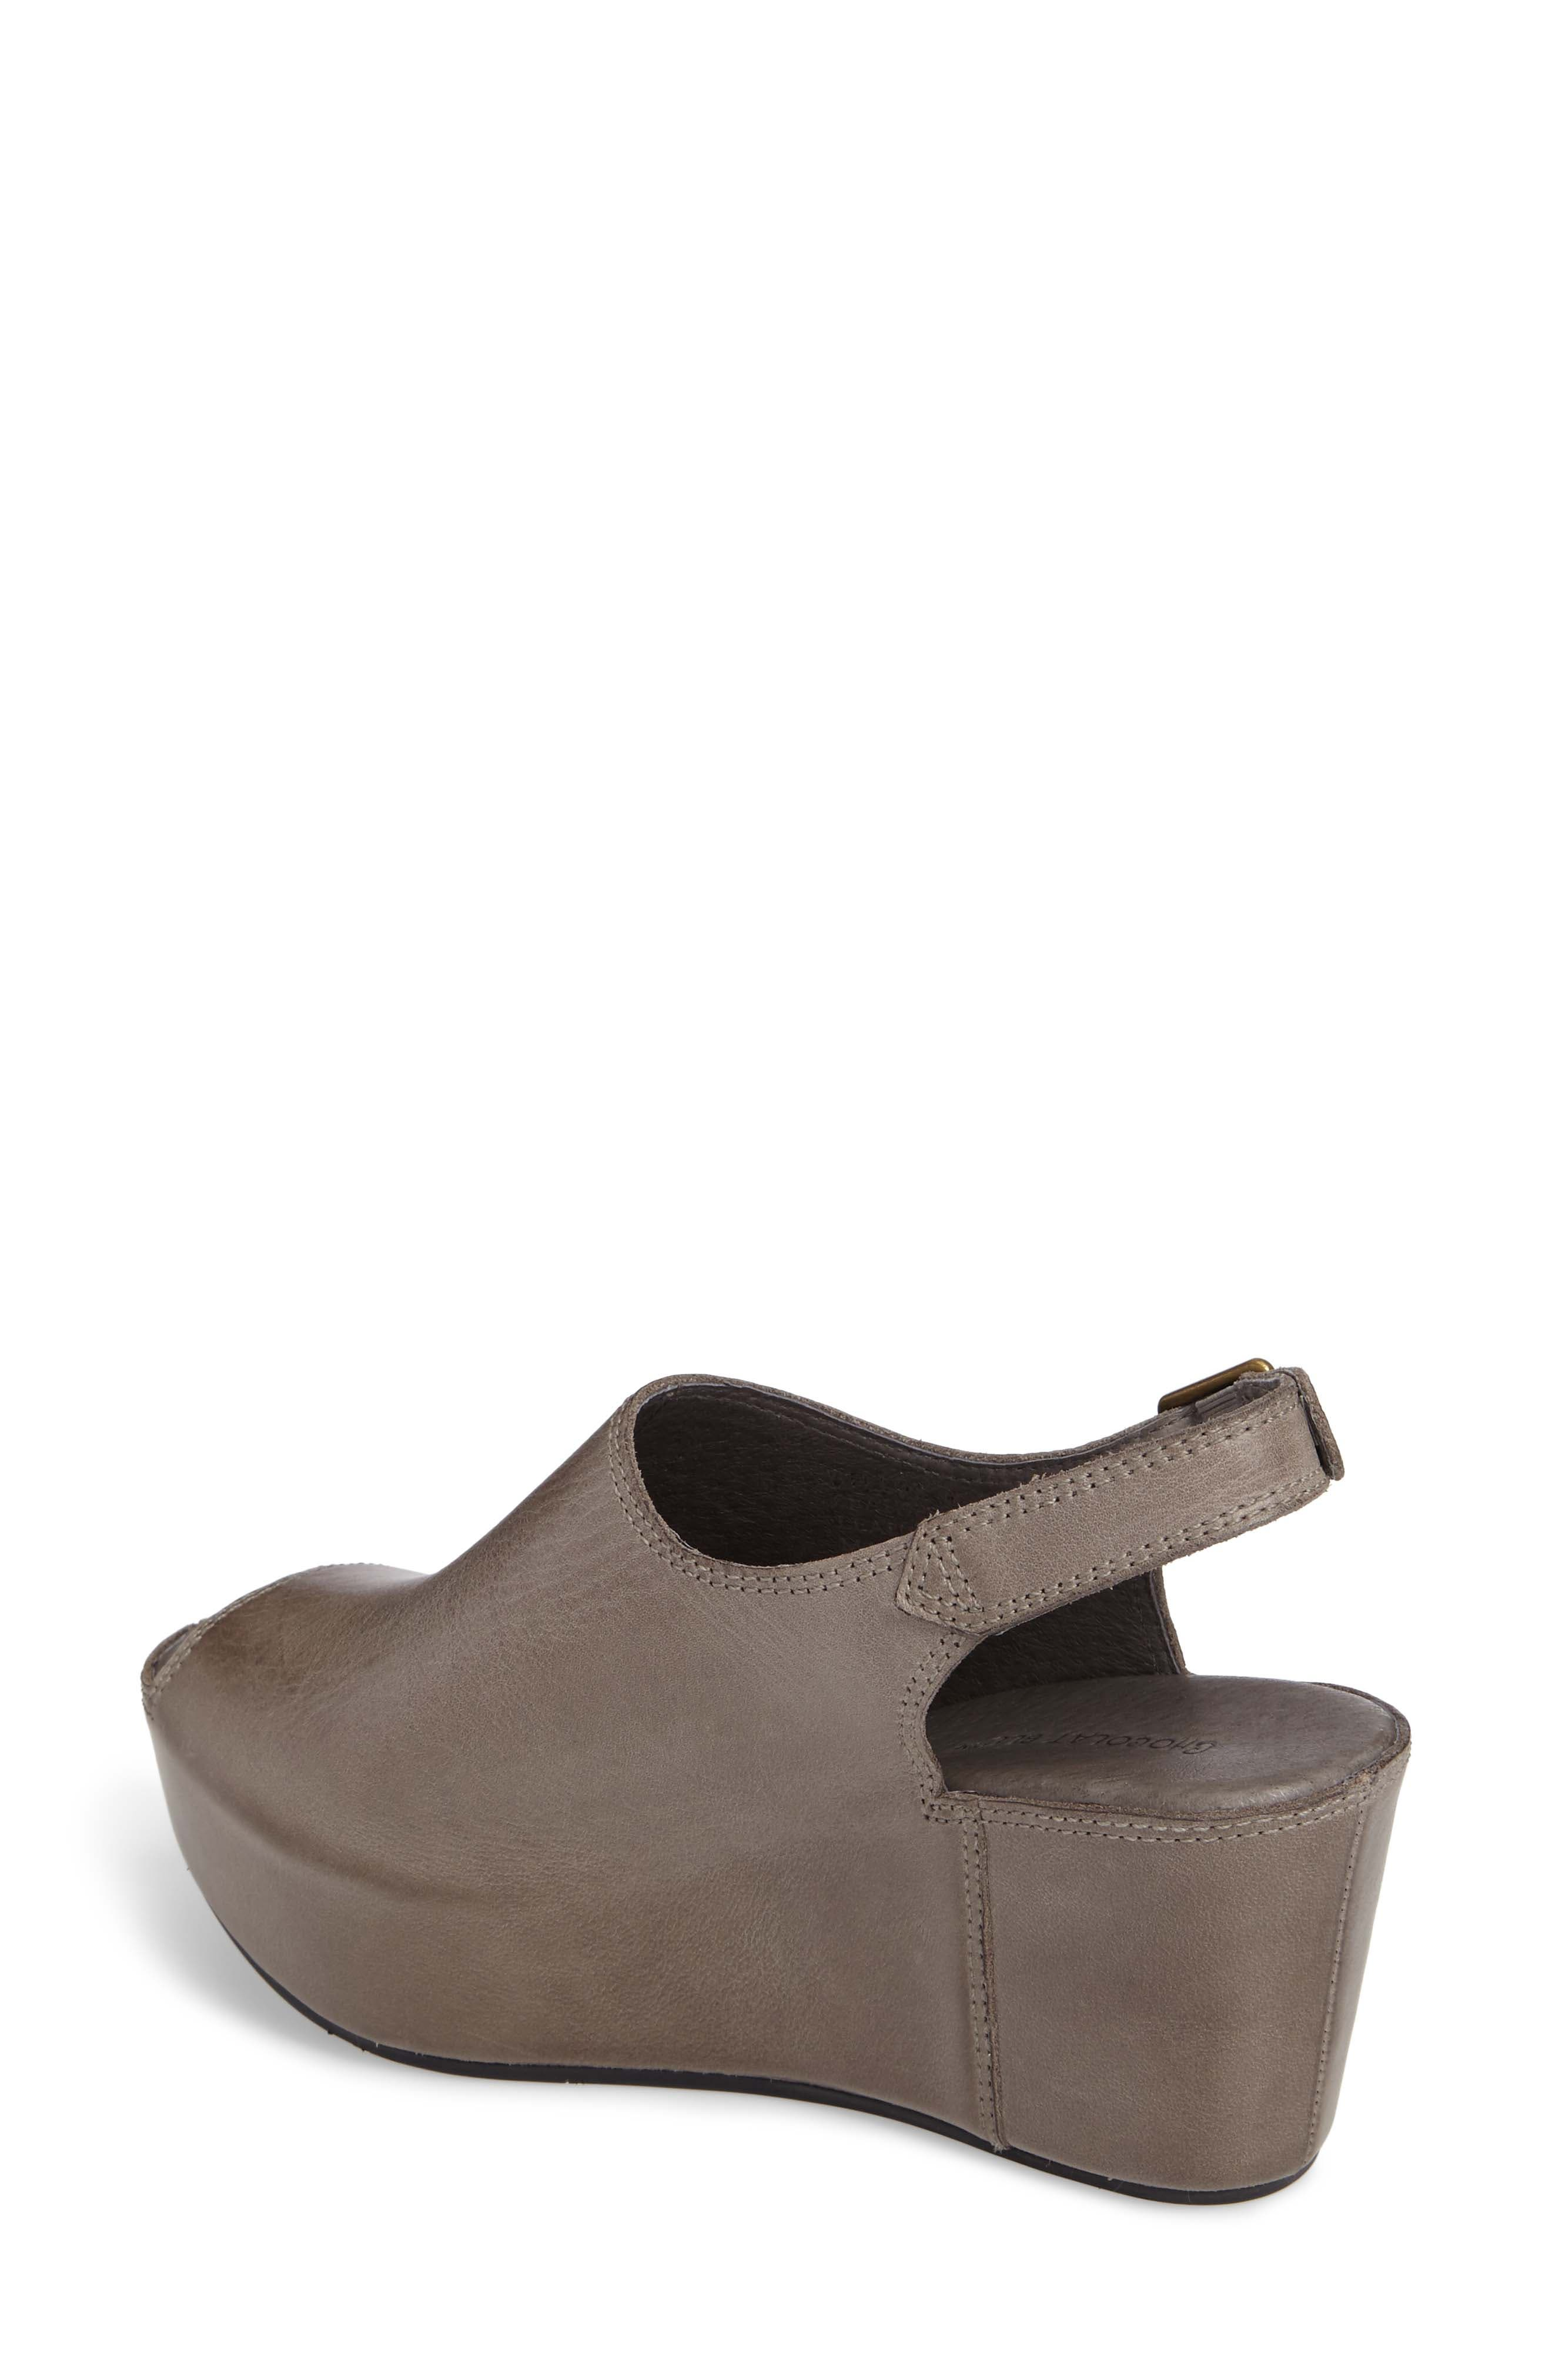 Willow Slingback Wedge,                             Alternate thumbnail 2, color,                             GRAPHITE LEATHER